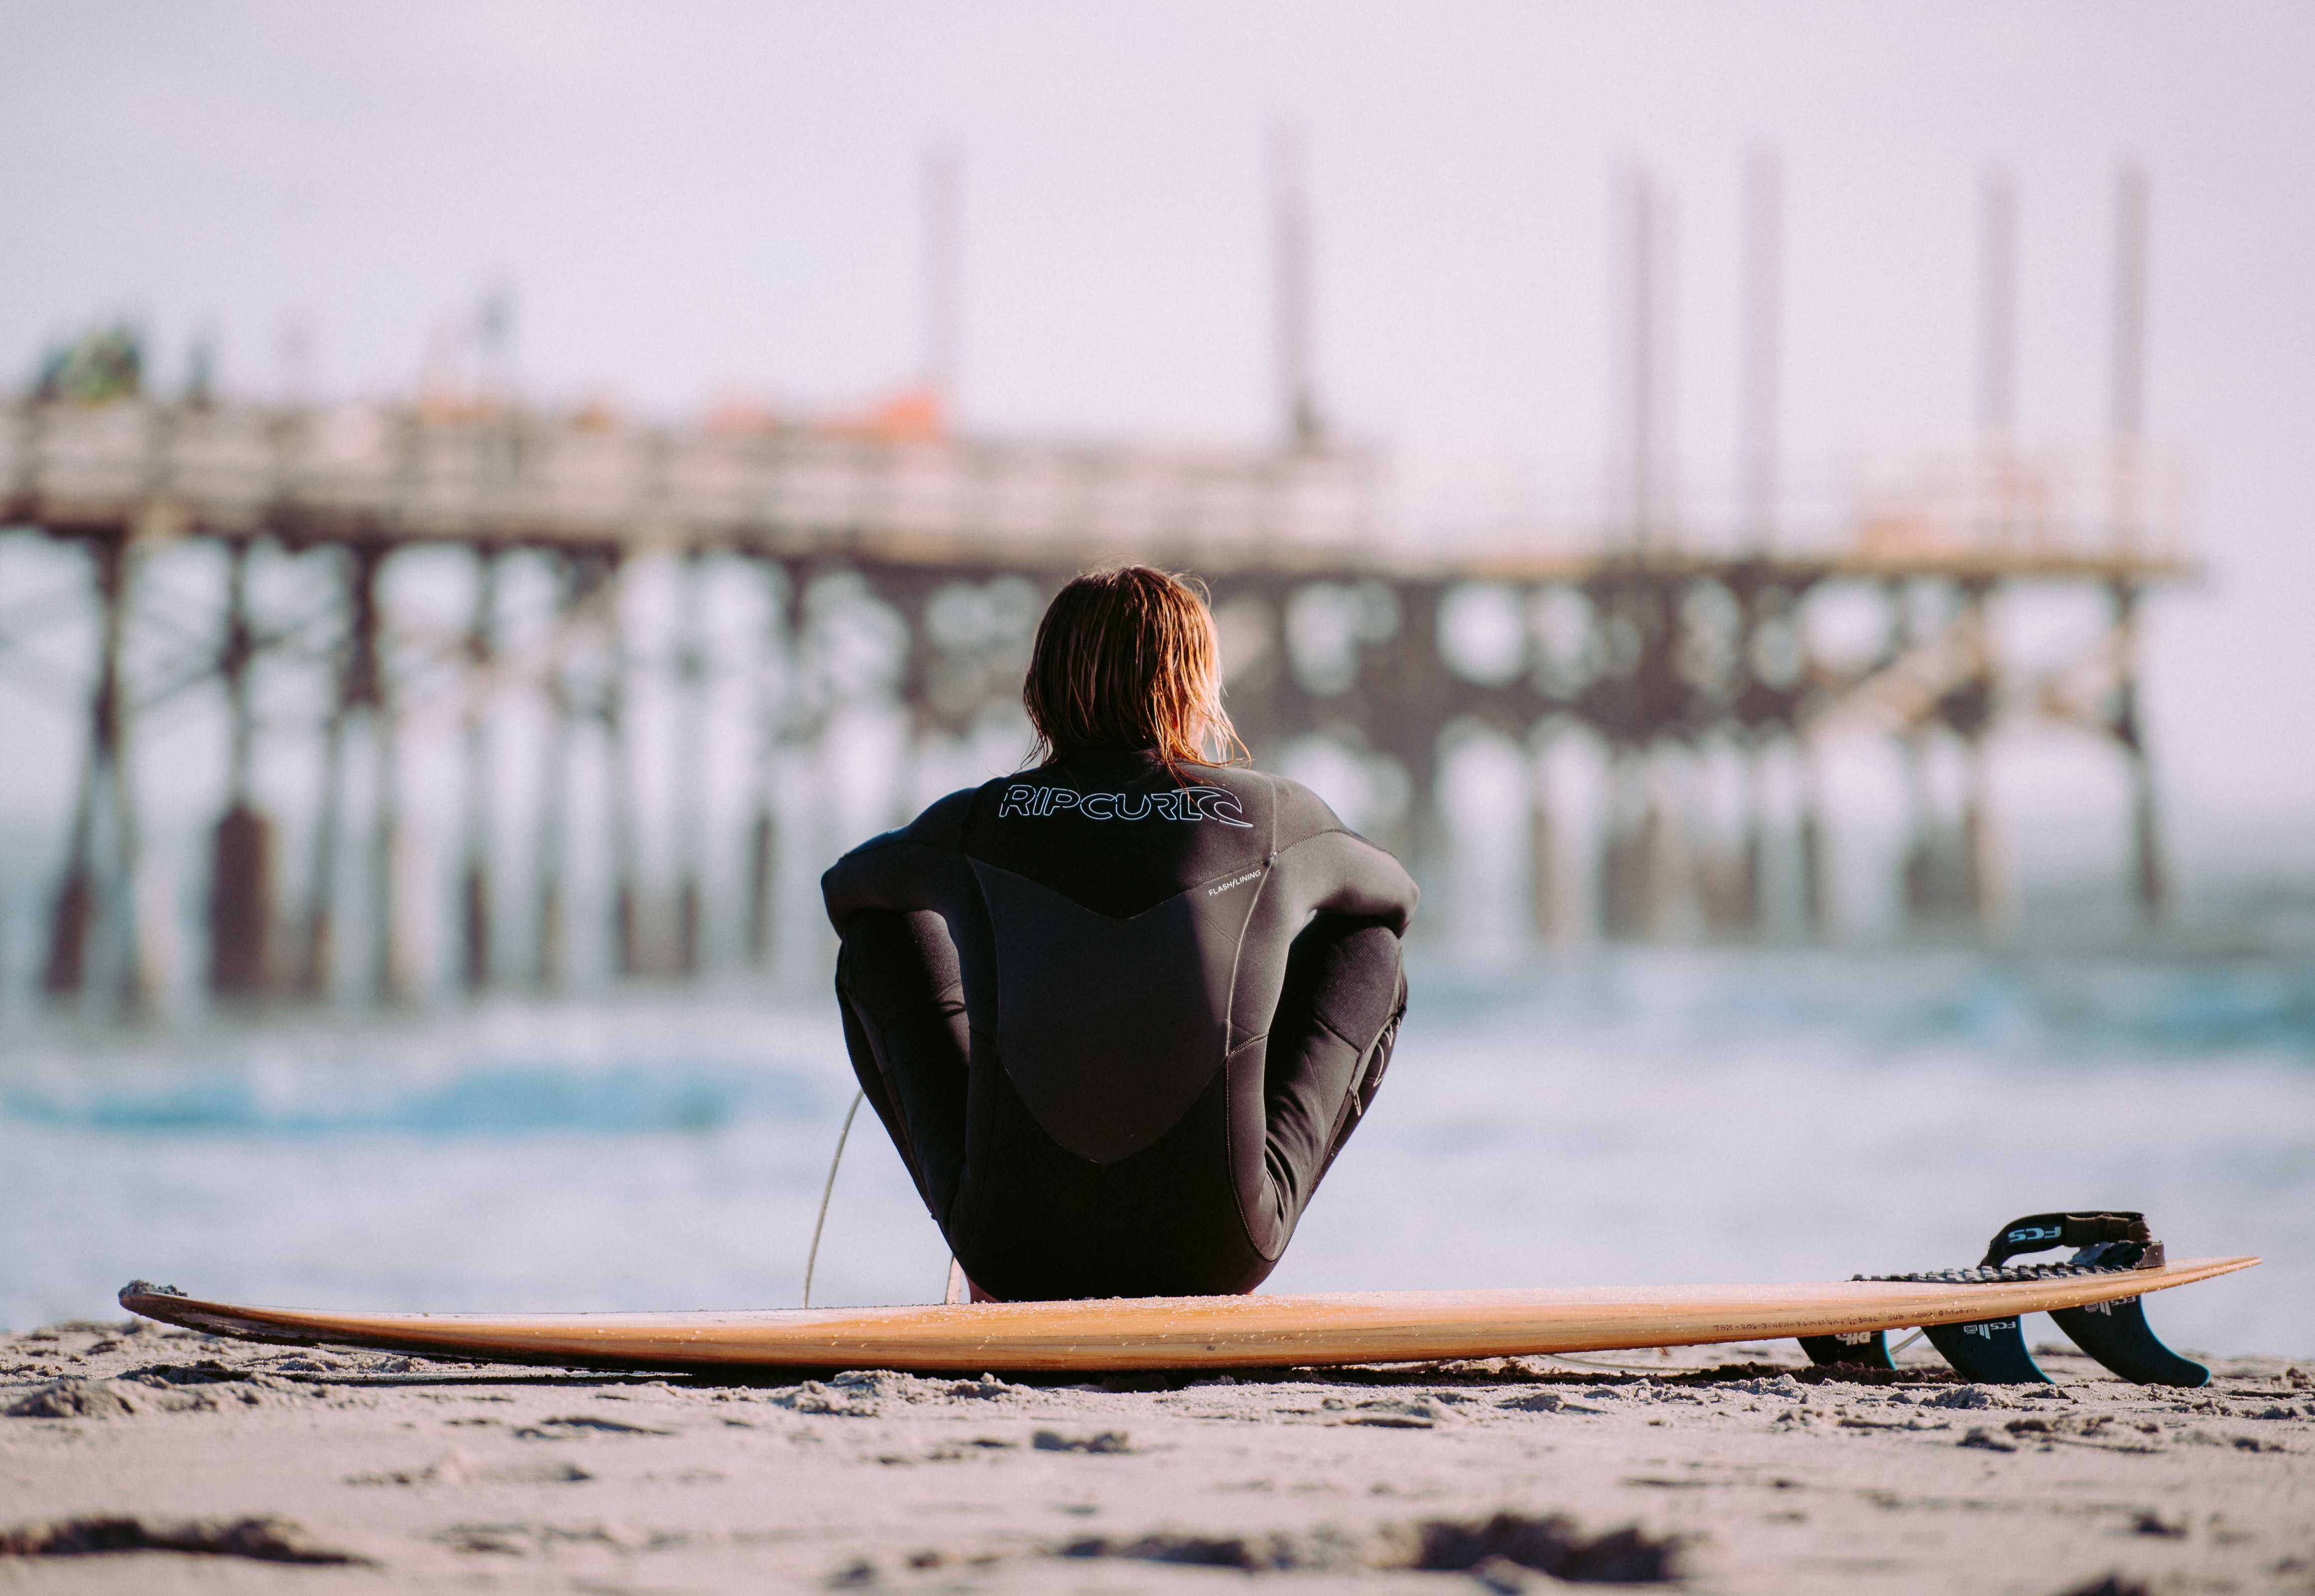 Surfer in a wetsuit sitting on the beach by the surfboard at Cocoa Beach